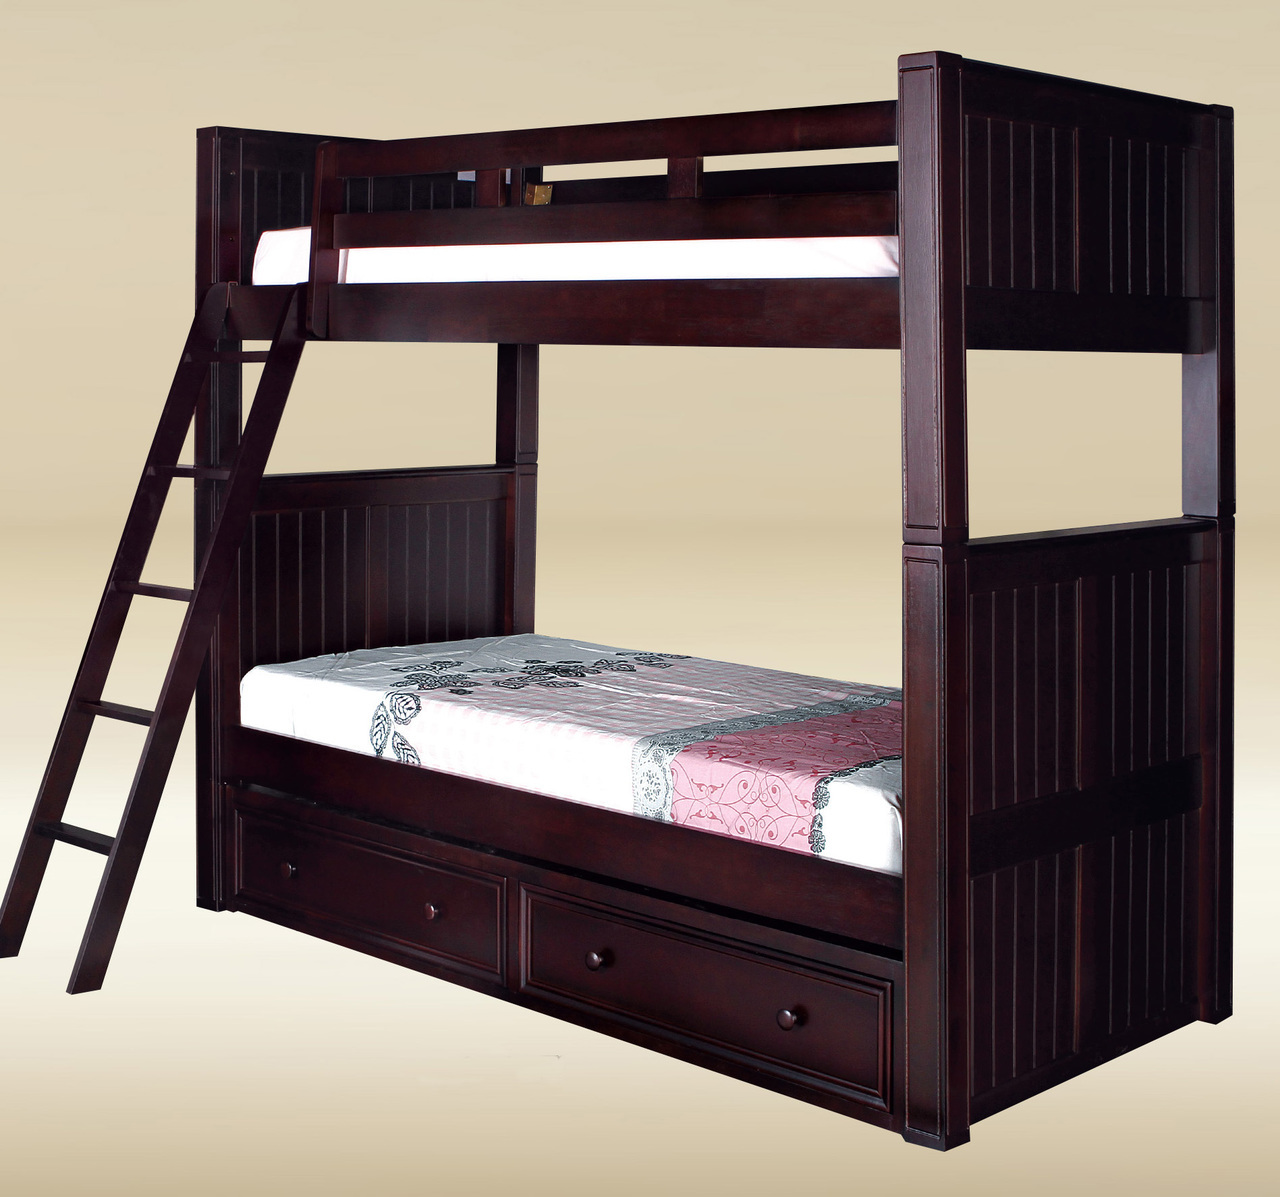 Vacation Homes Twin Bunk Beds And Extra Long Bunk Beds